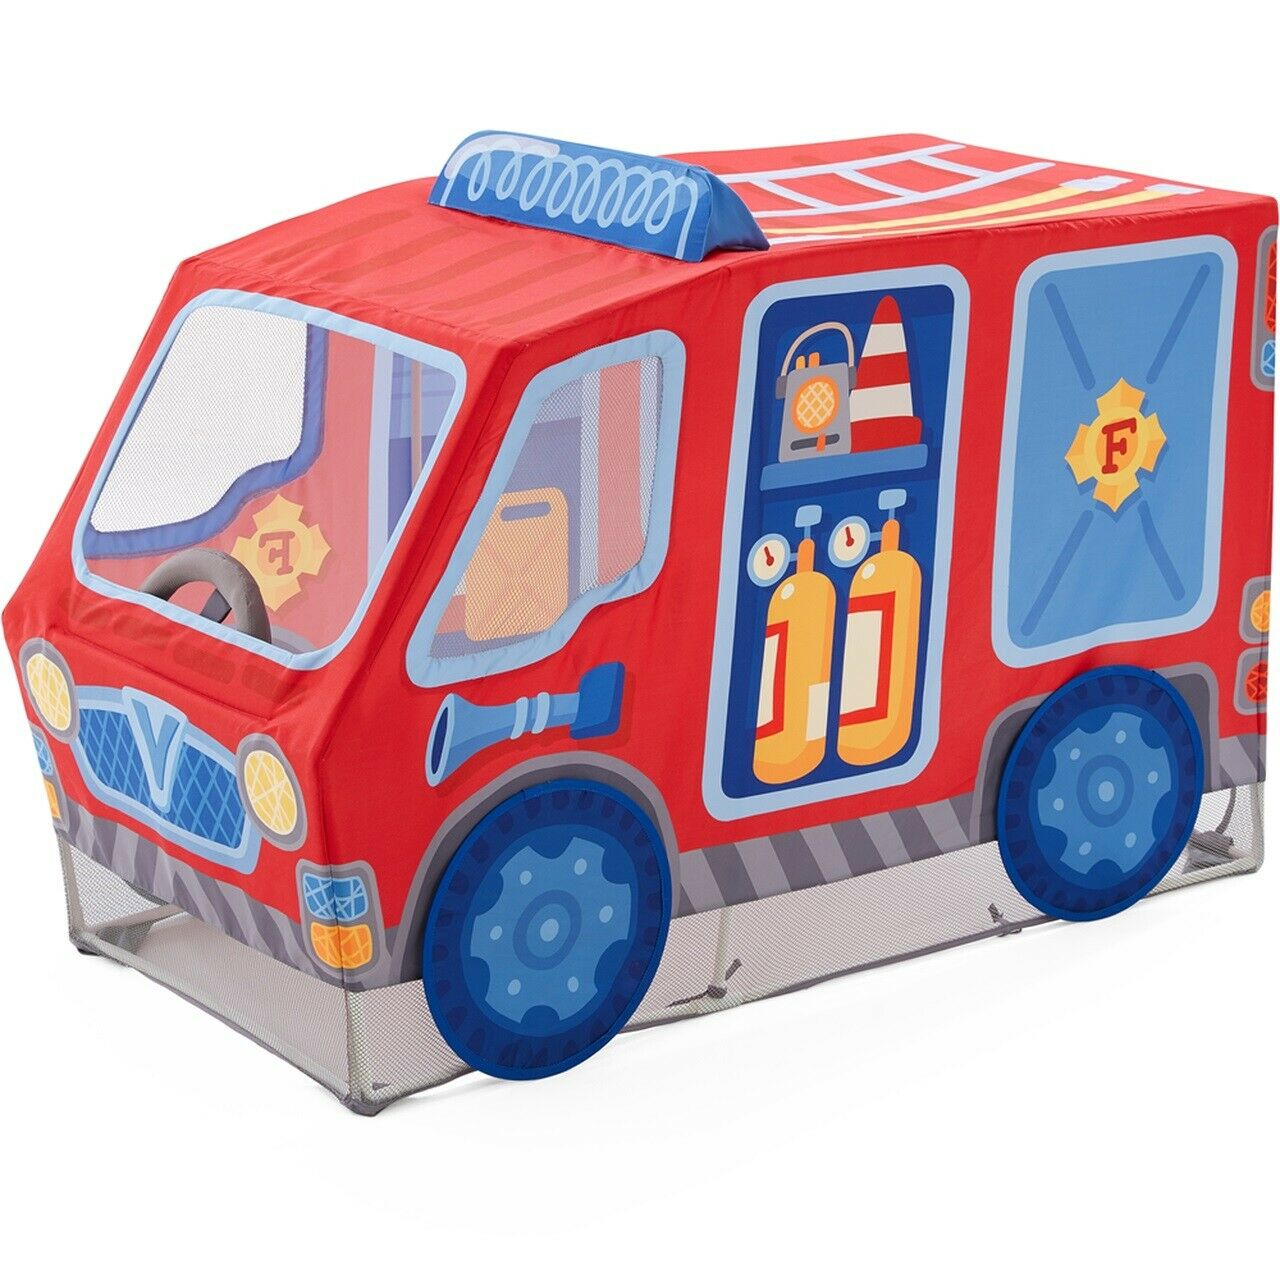 HABA Fire Brigade Play Tent, free shipping